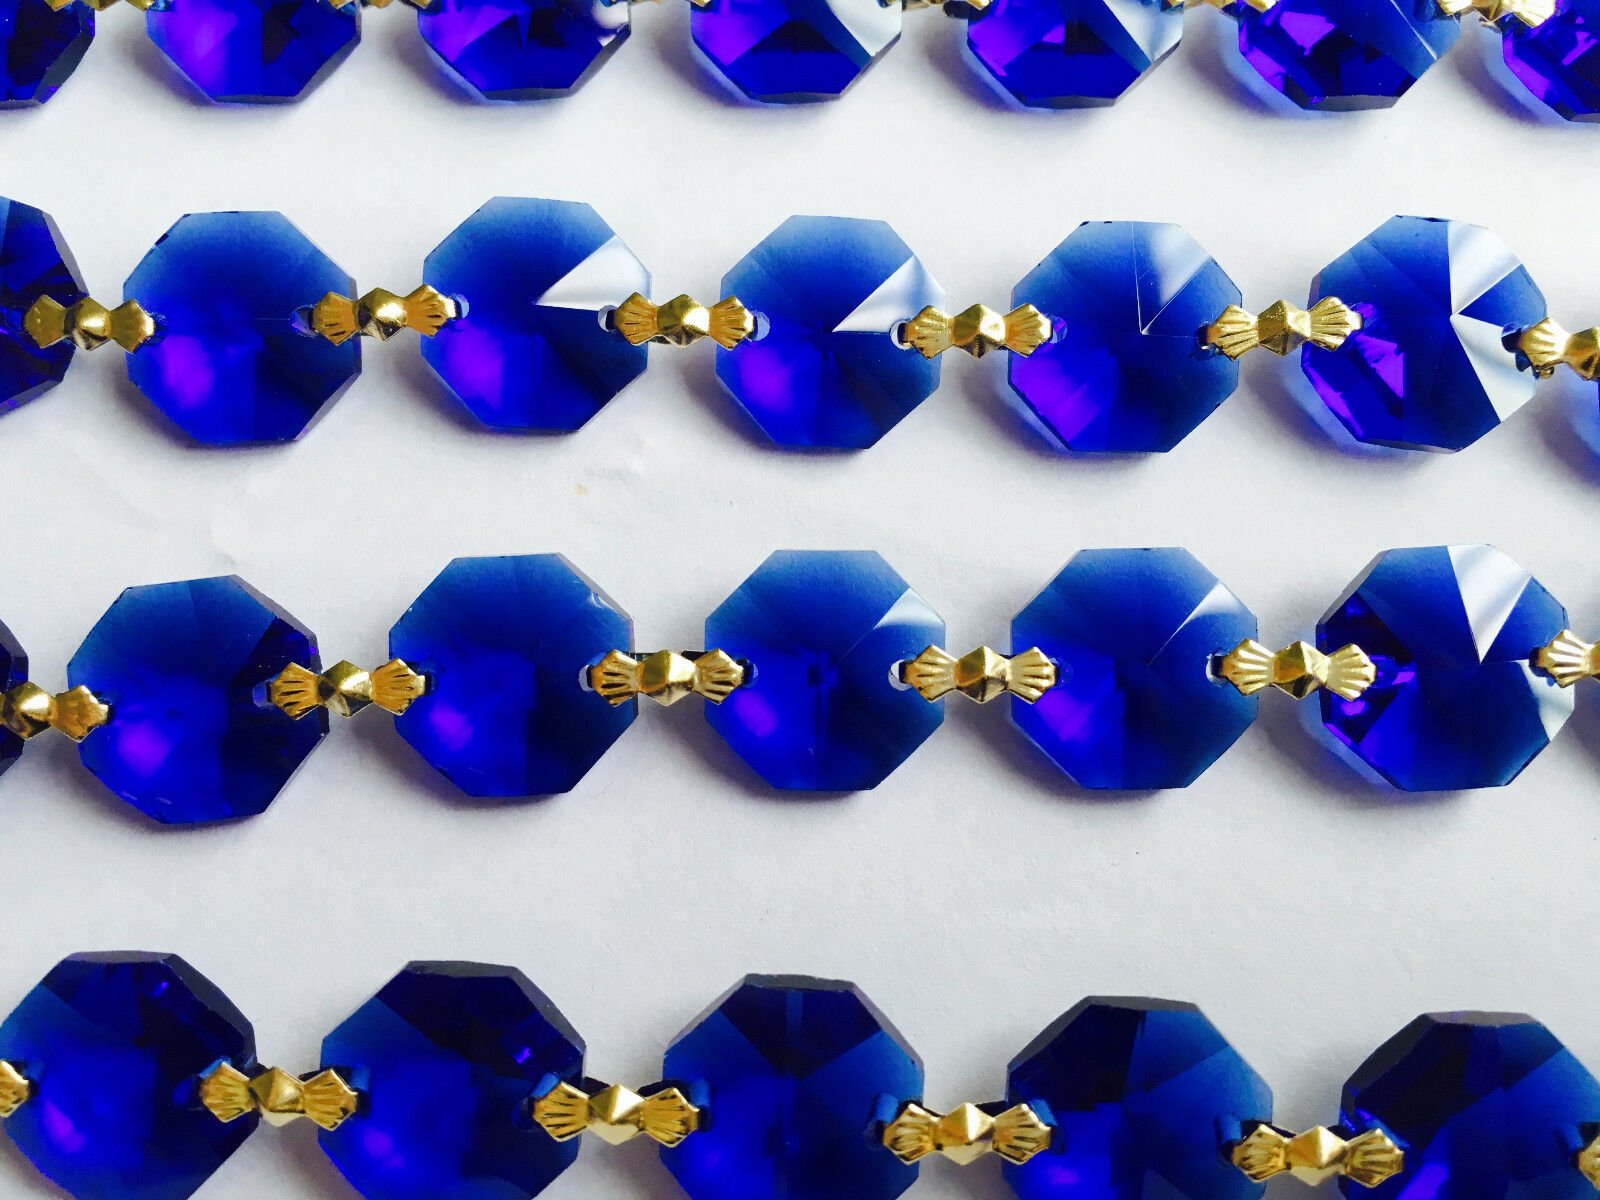 3ft blue crystal14mm glass bead chandelier lamp part wedding garland gold chain ebay - Chandelier glass beads ...